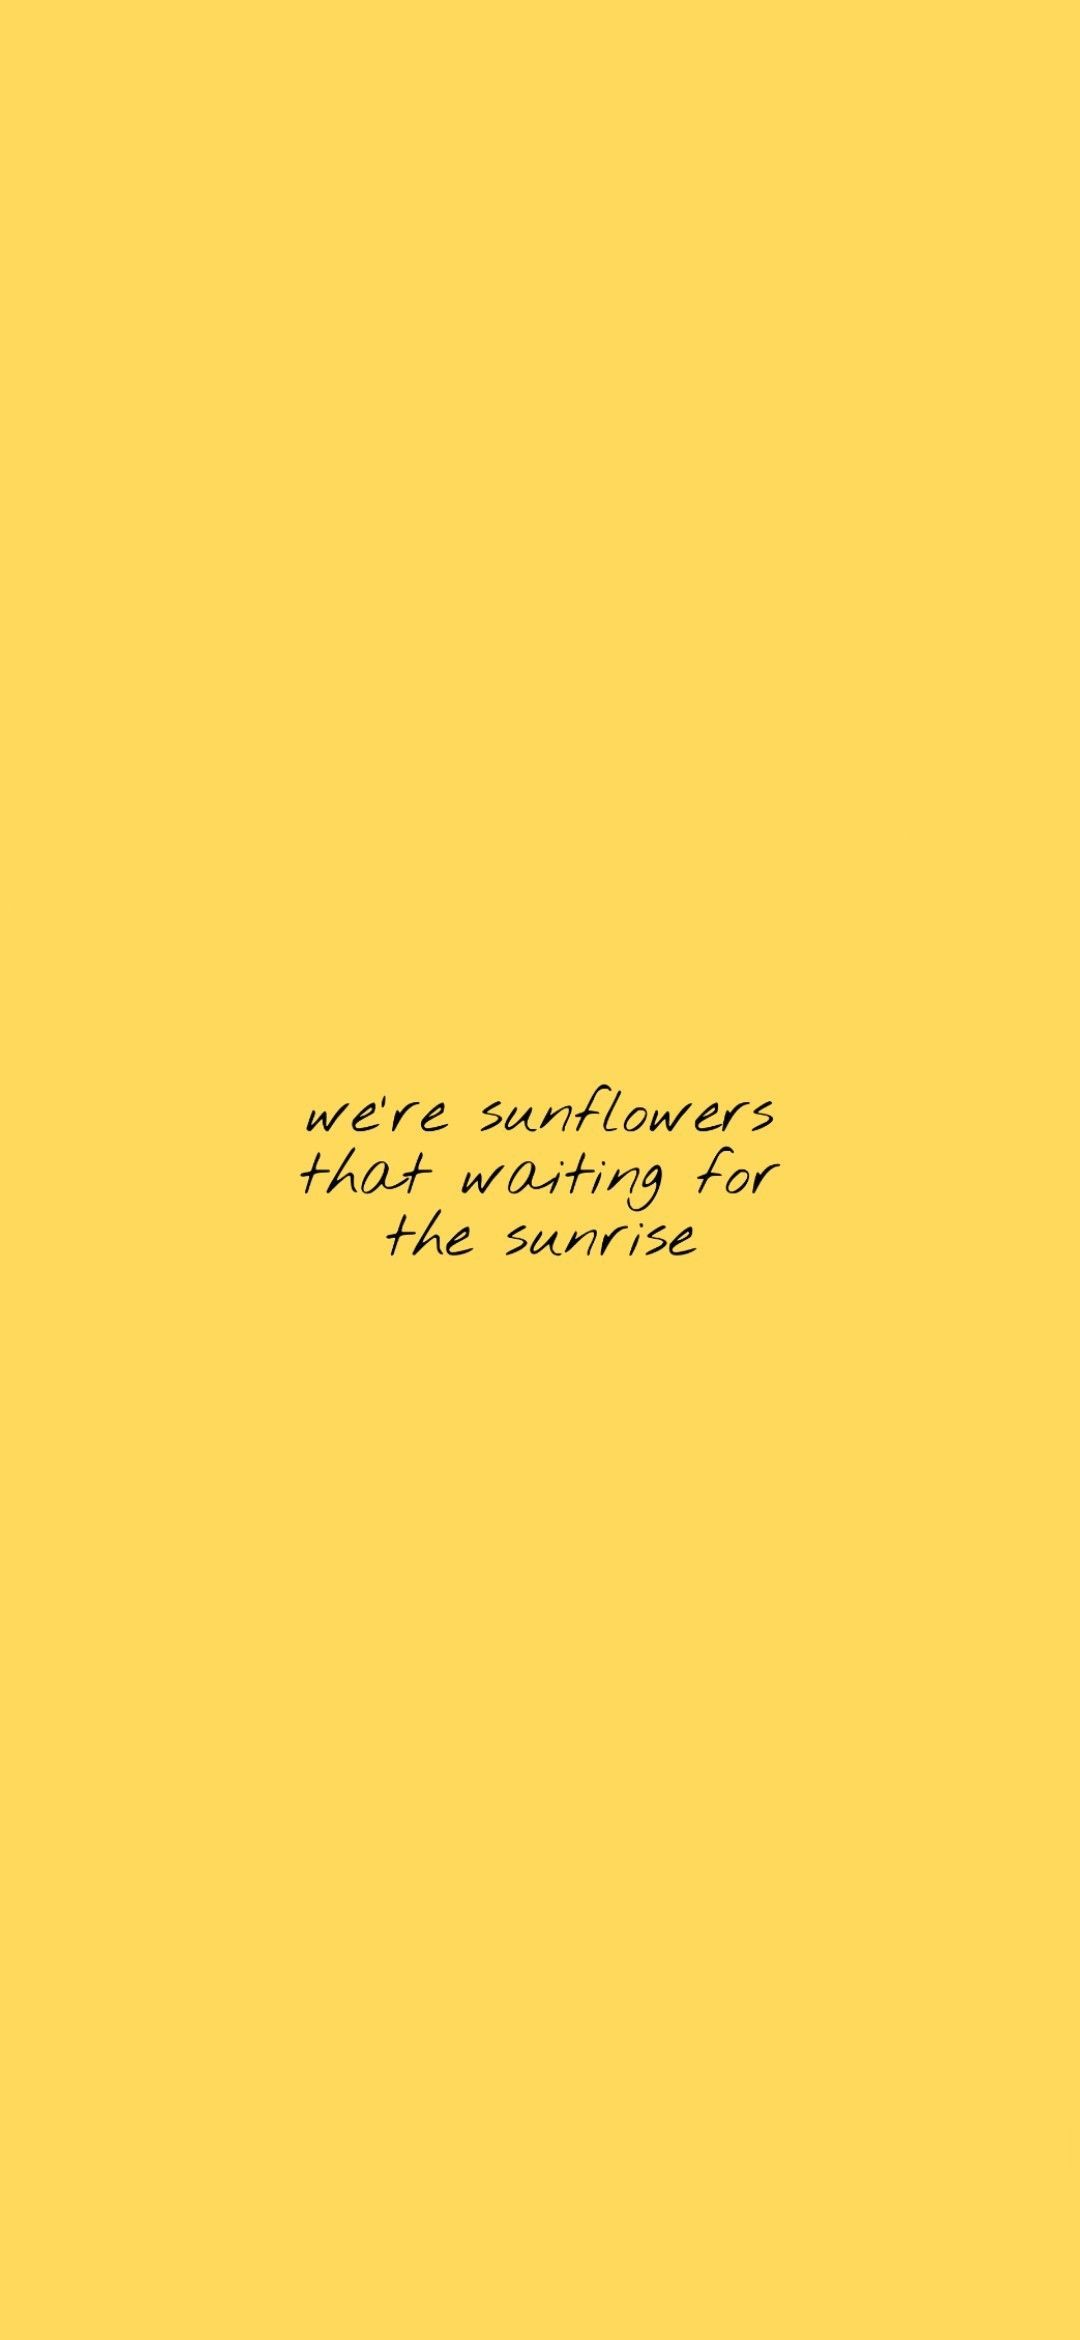 sunflower quotes aesthetic yellow wallpaper